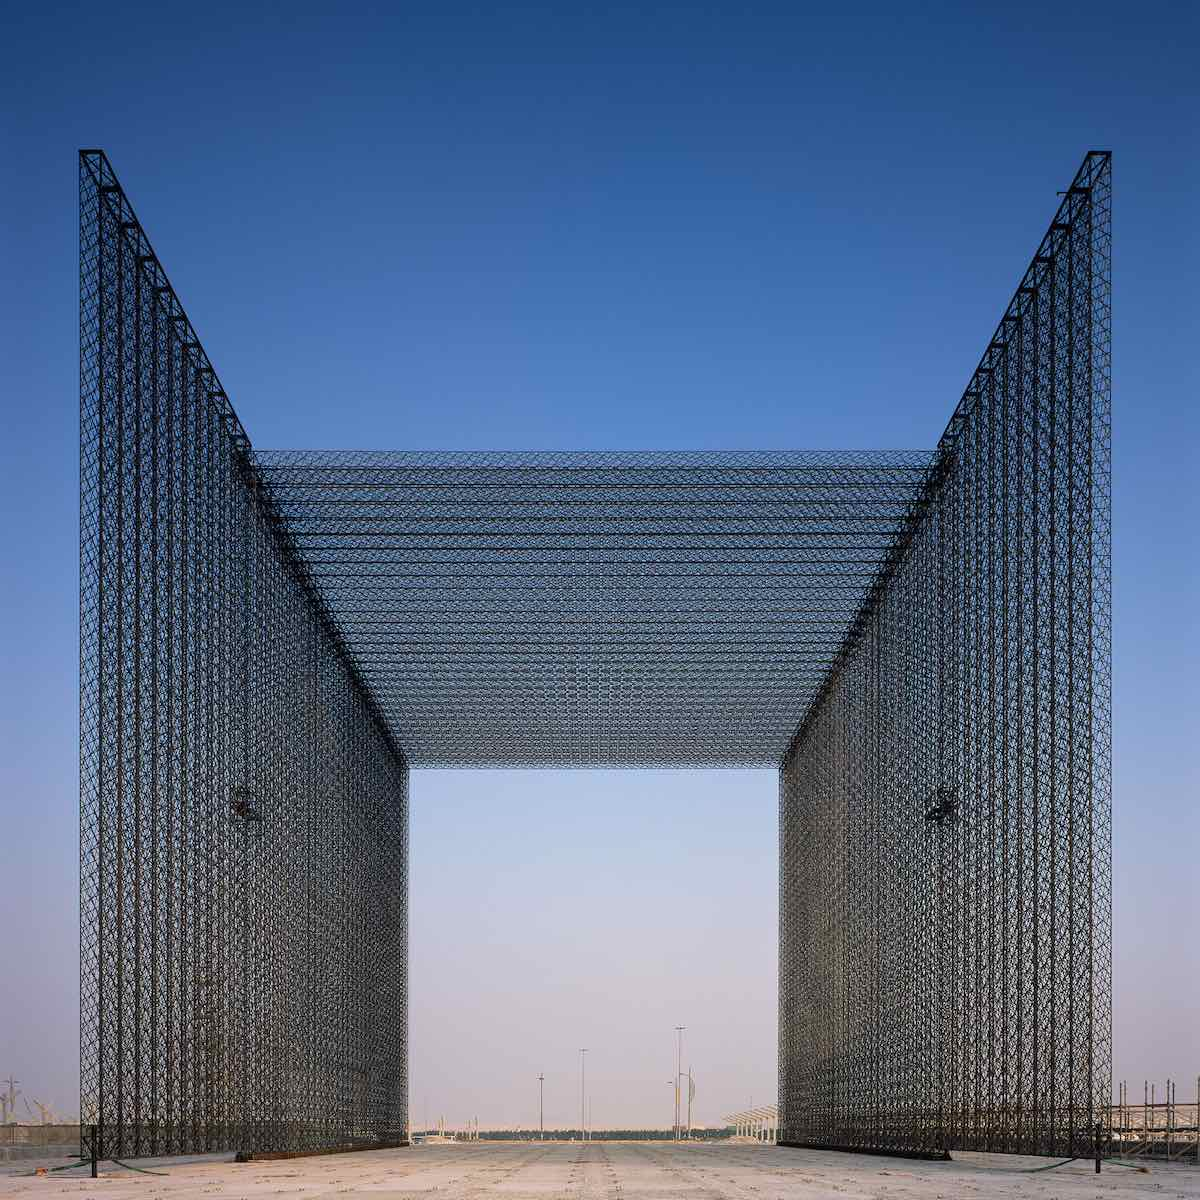 Asif Khan's ethereal portals for Expo 2020 Dubai - Photo by Helene Binet, courtesy of Asif Khan design studio.